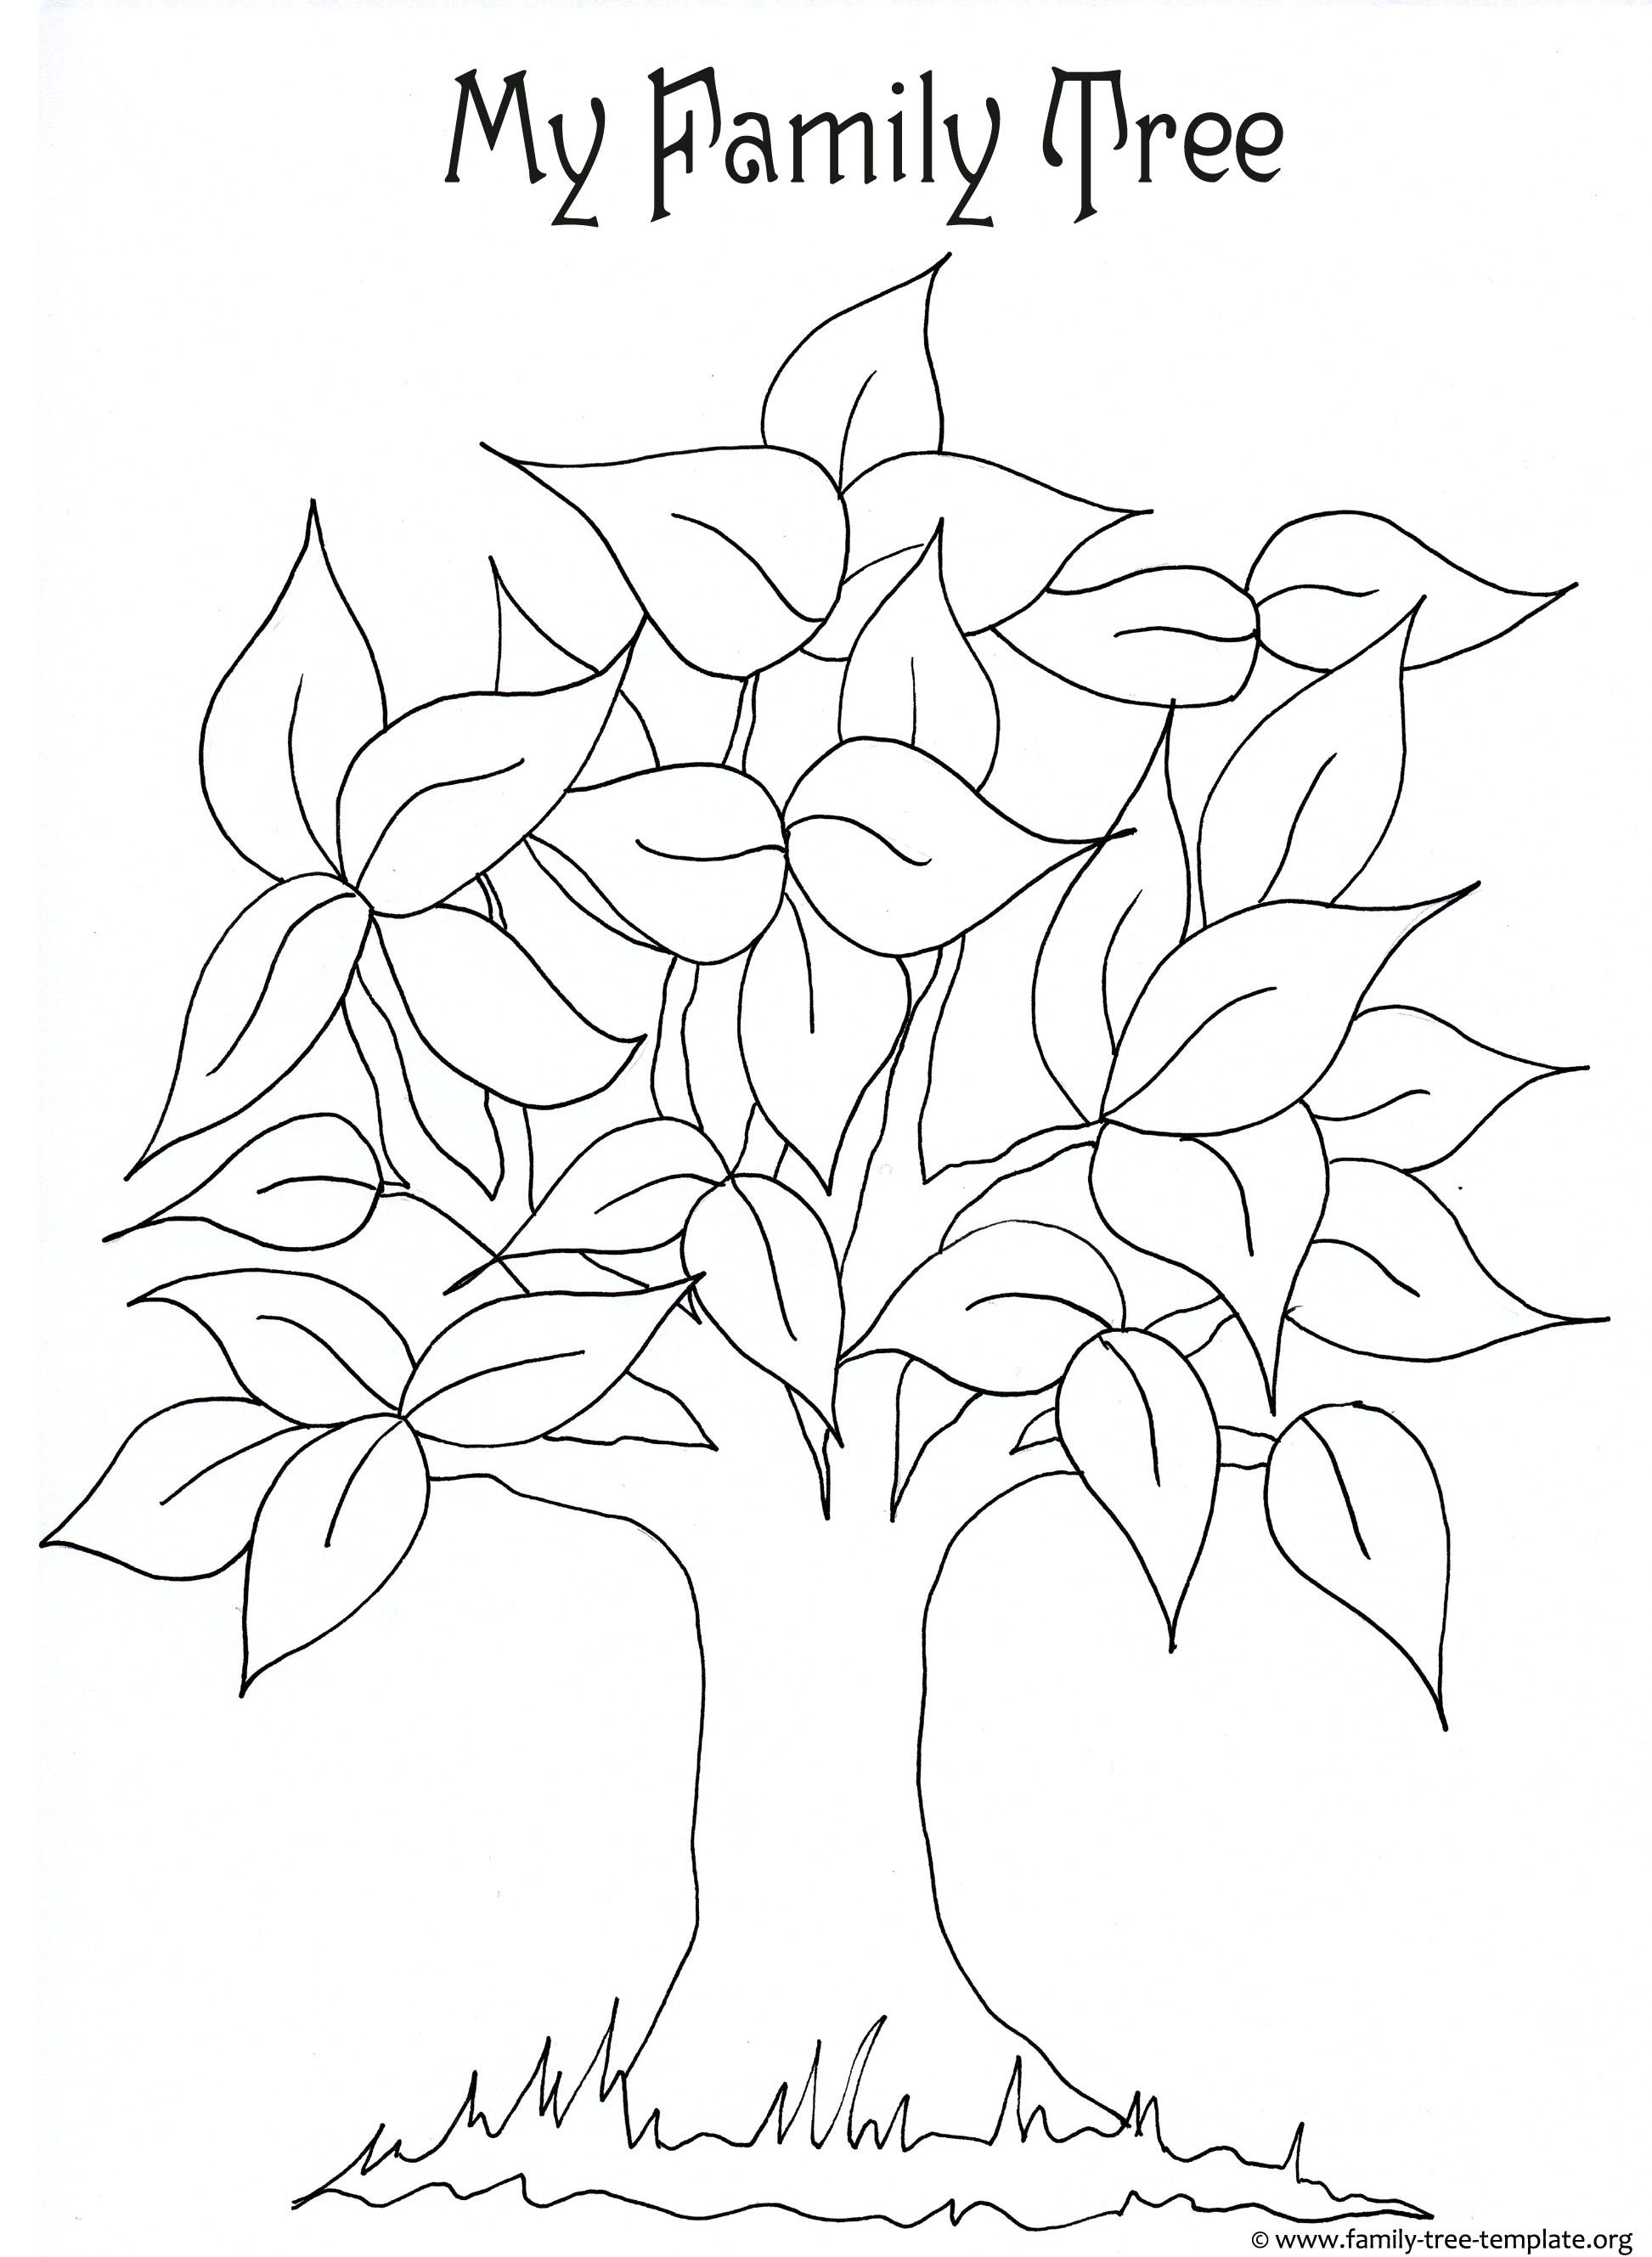 Free printable coloring page for